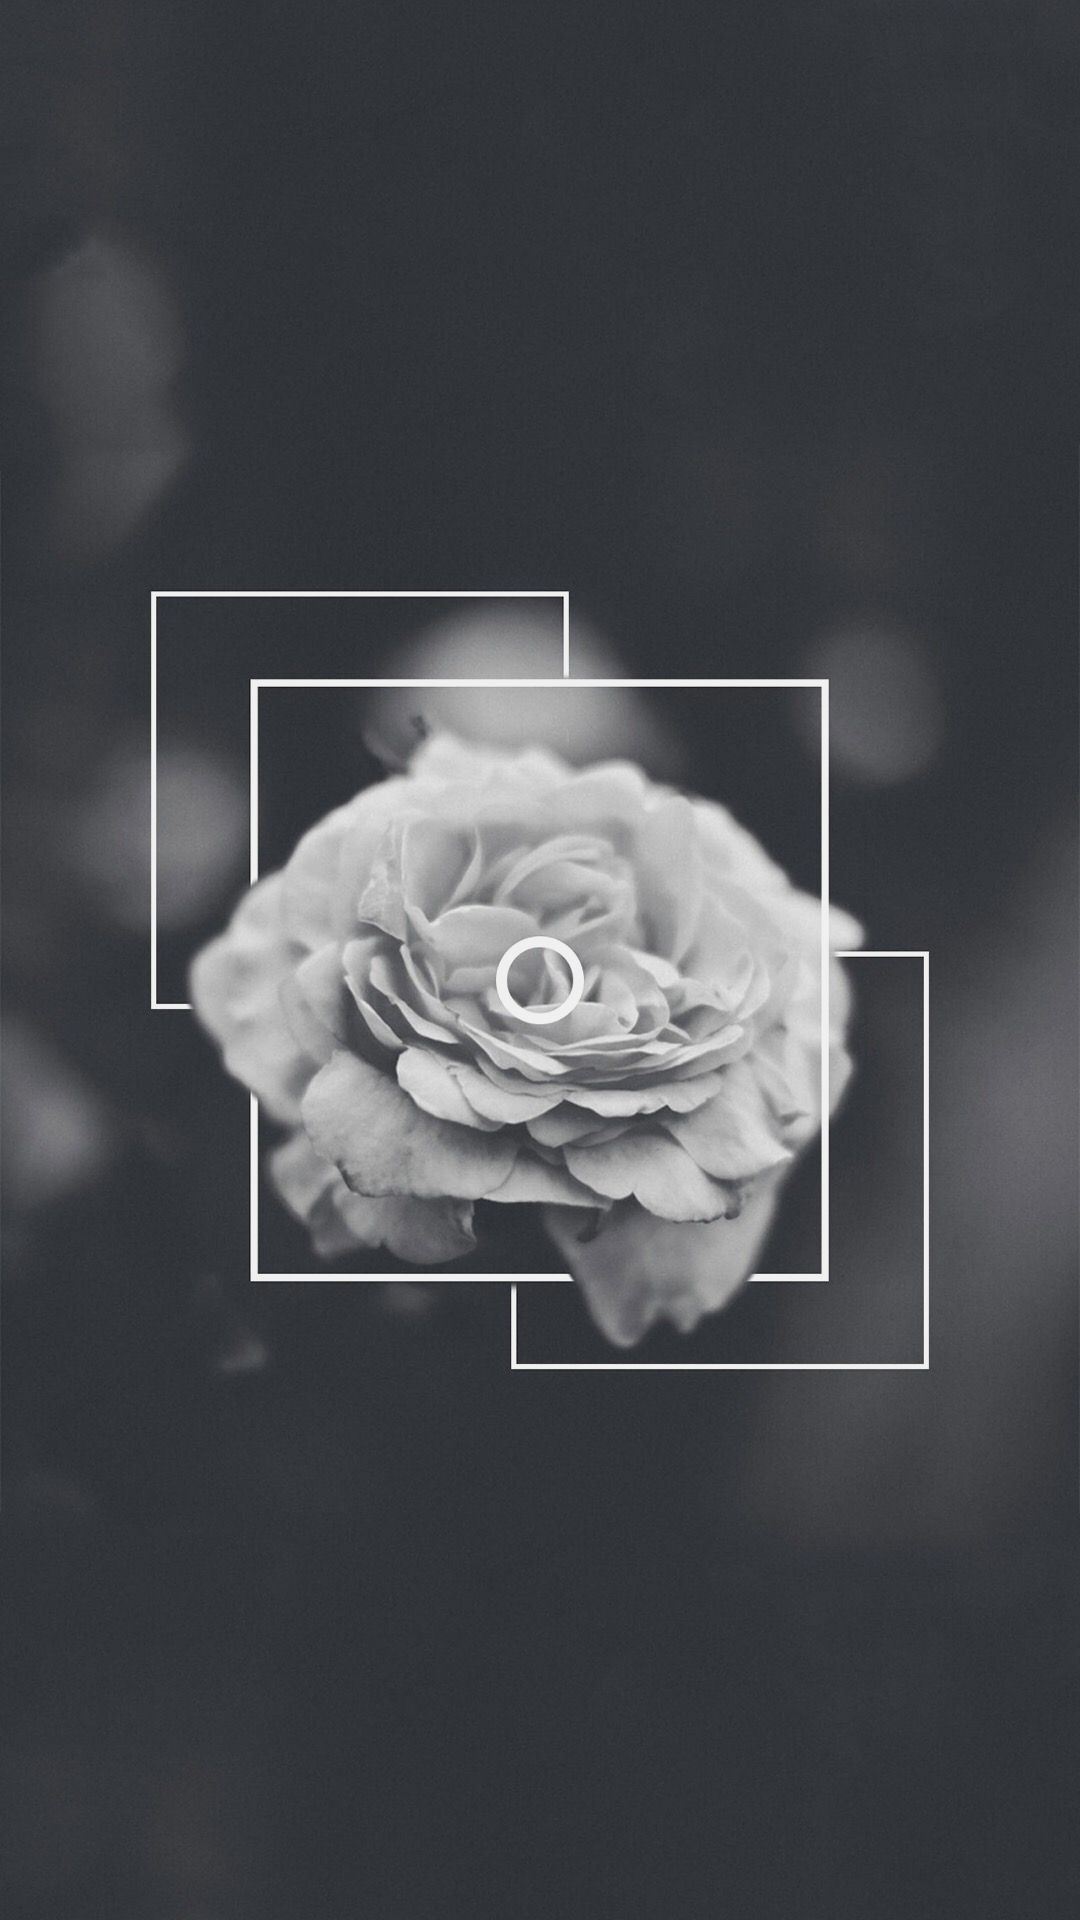 Black Rose Aesthetic Wallpapers On Wallpaperdog